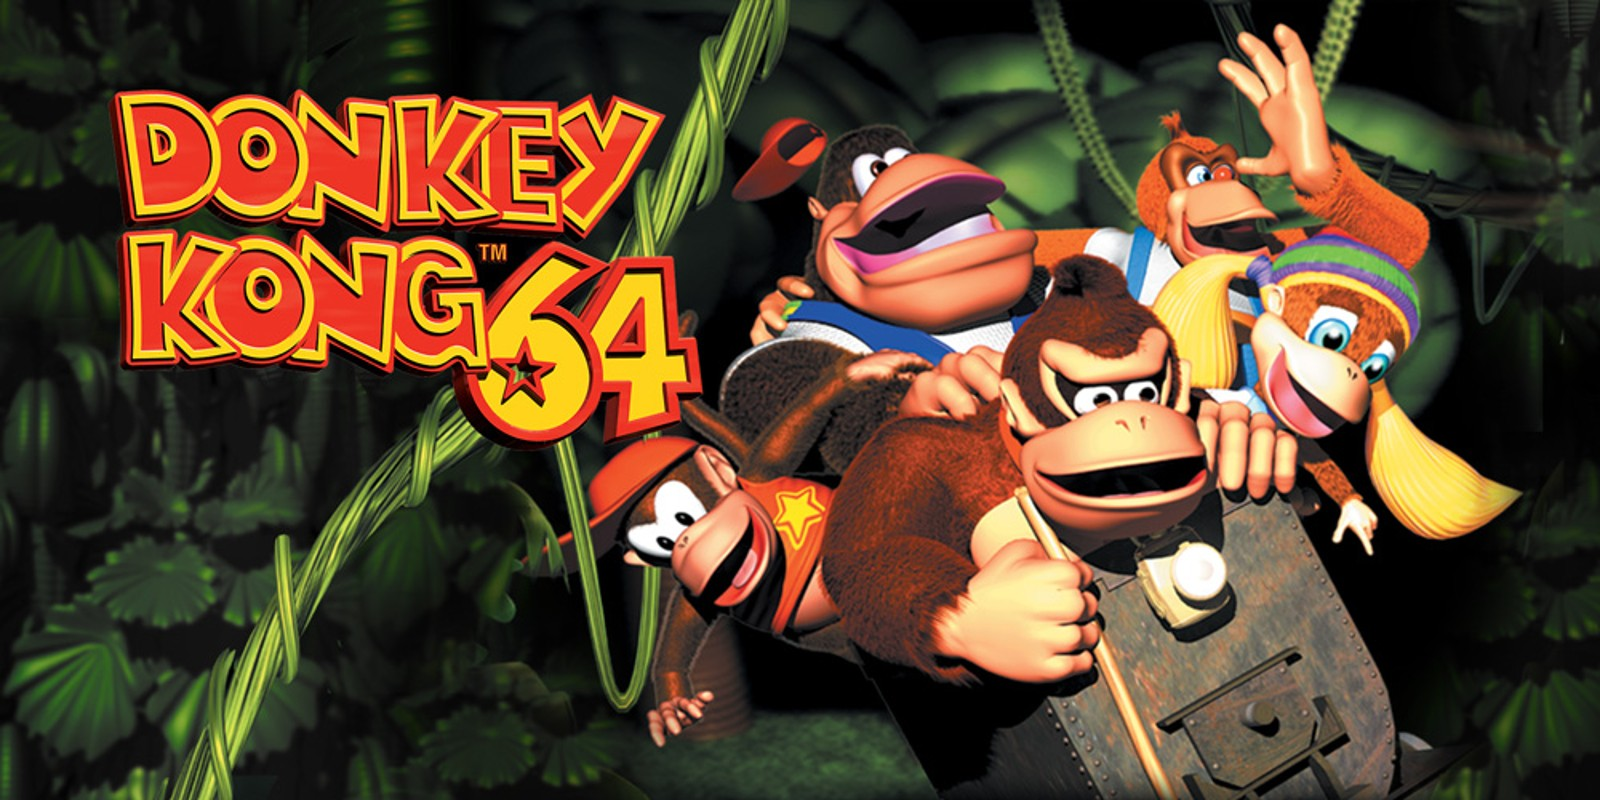 https://cdn03.nintendo-europe.com/media/images/10_share_images/games_15/nintendo_7/SI_N64_DonkeyKong64_image1600w.jpg